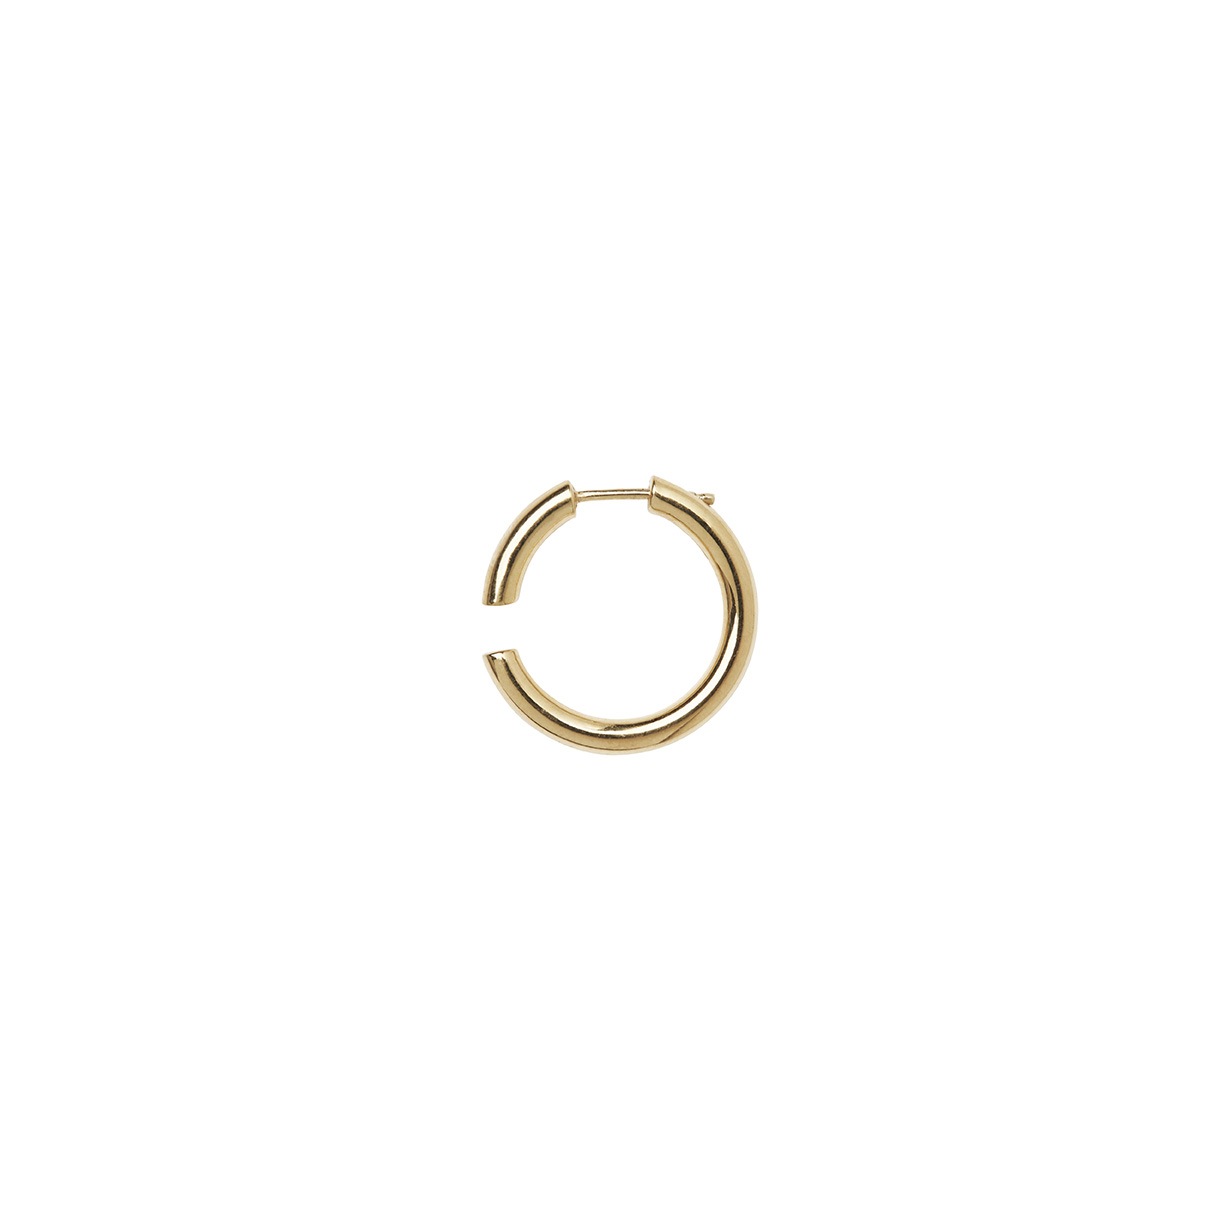 Disrupted_22_Earring_Gold_HP_Low.jpg